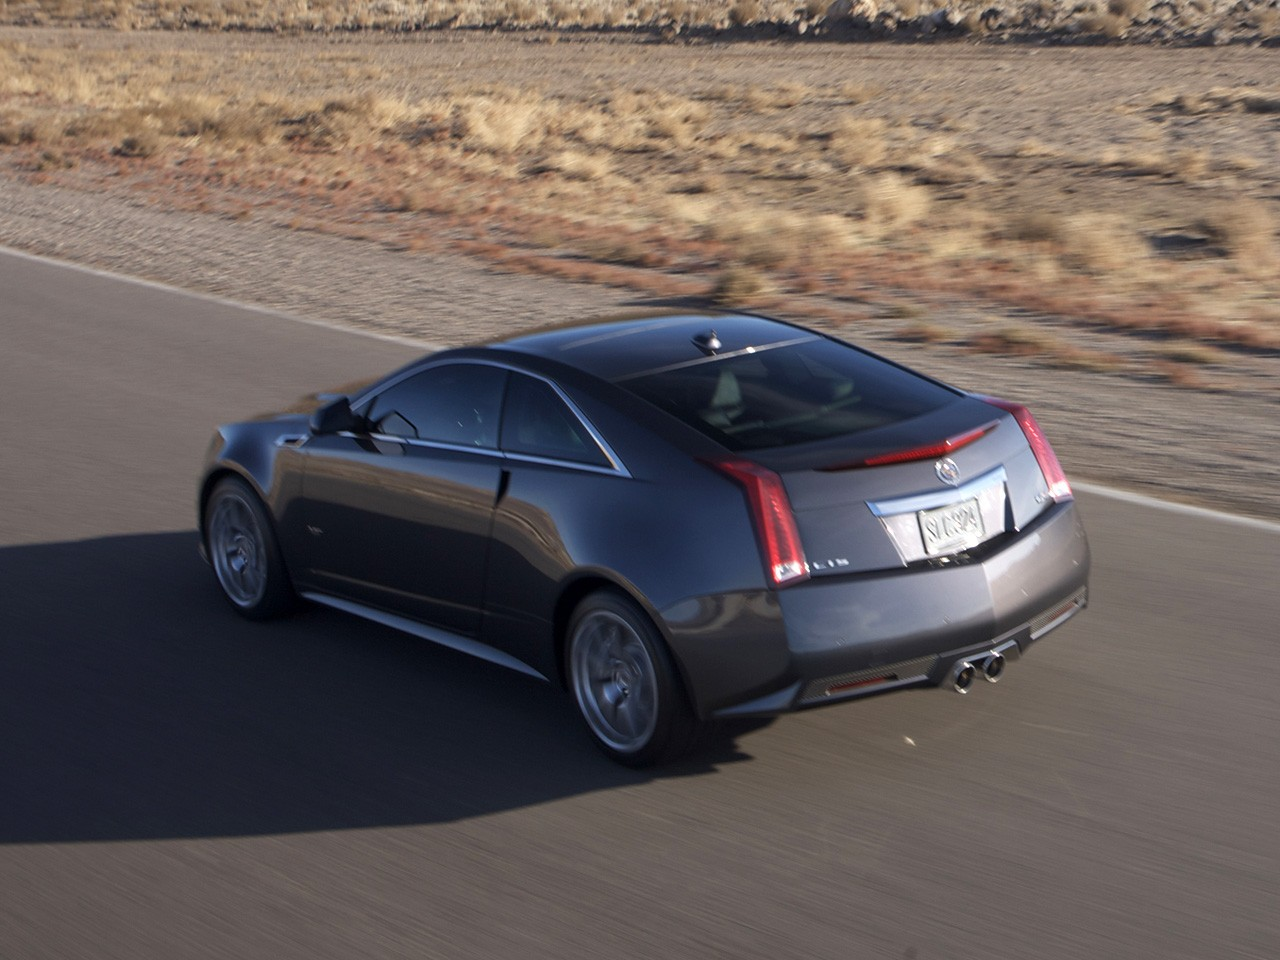 2018 Cadillac CTS Coupe photo - 1